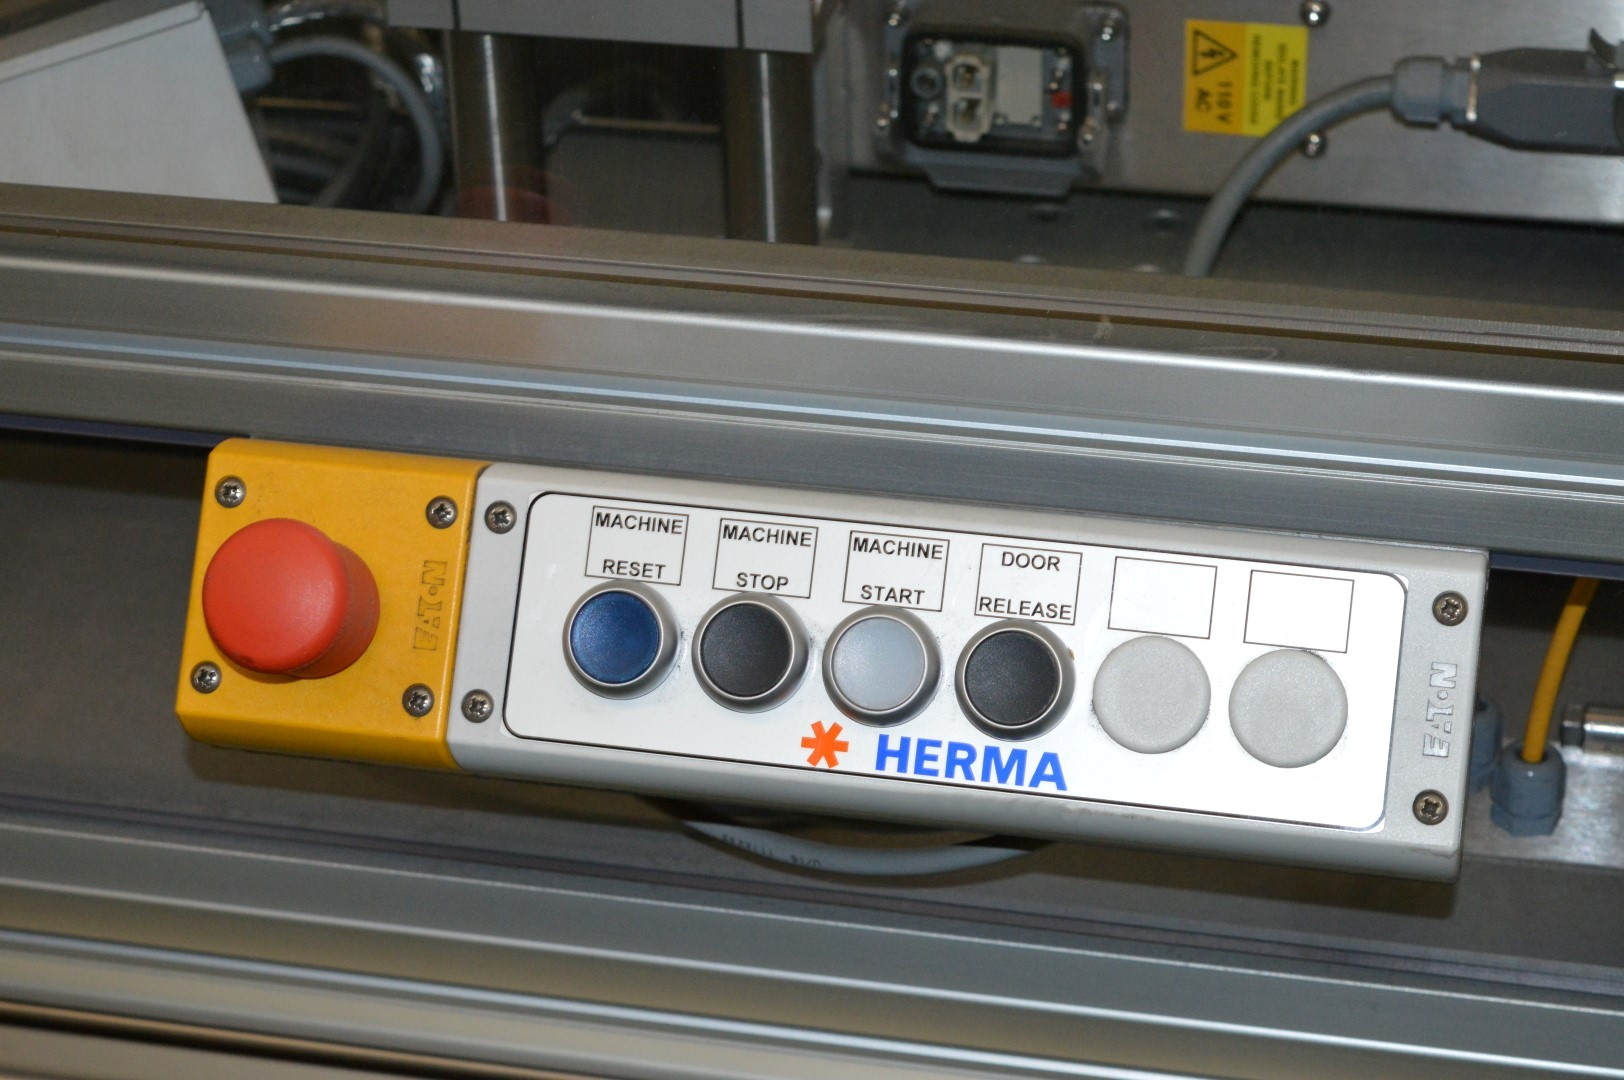 Lot 10 - 1 x Herma Infrared Label Applicating Heat Tunnel - Manufactured in 2015 - Designed For Applying